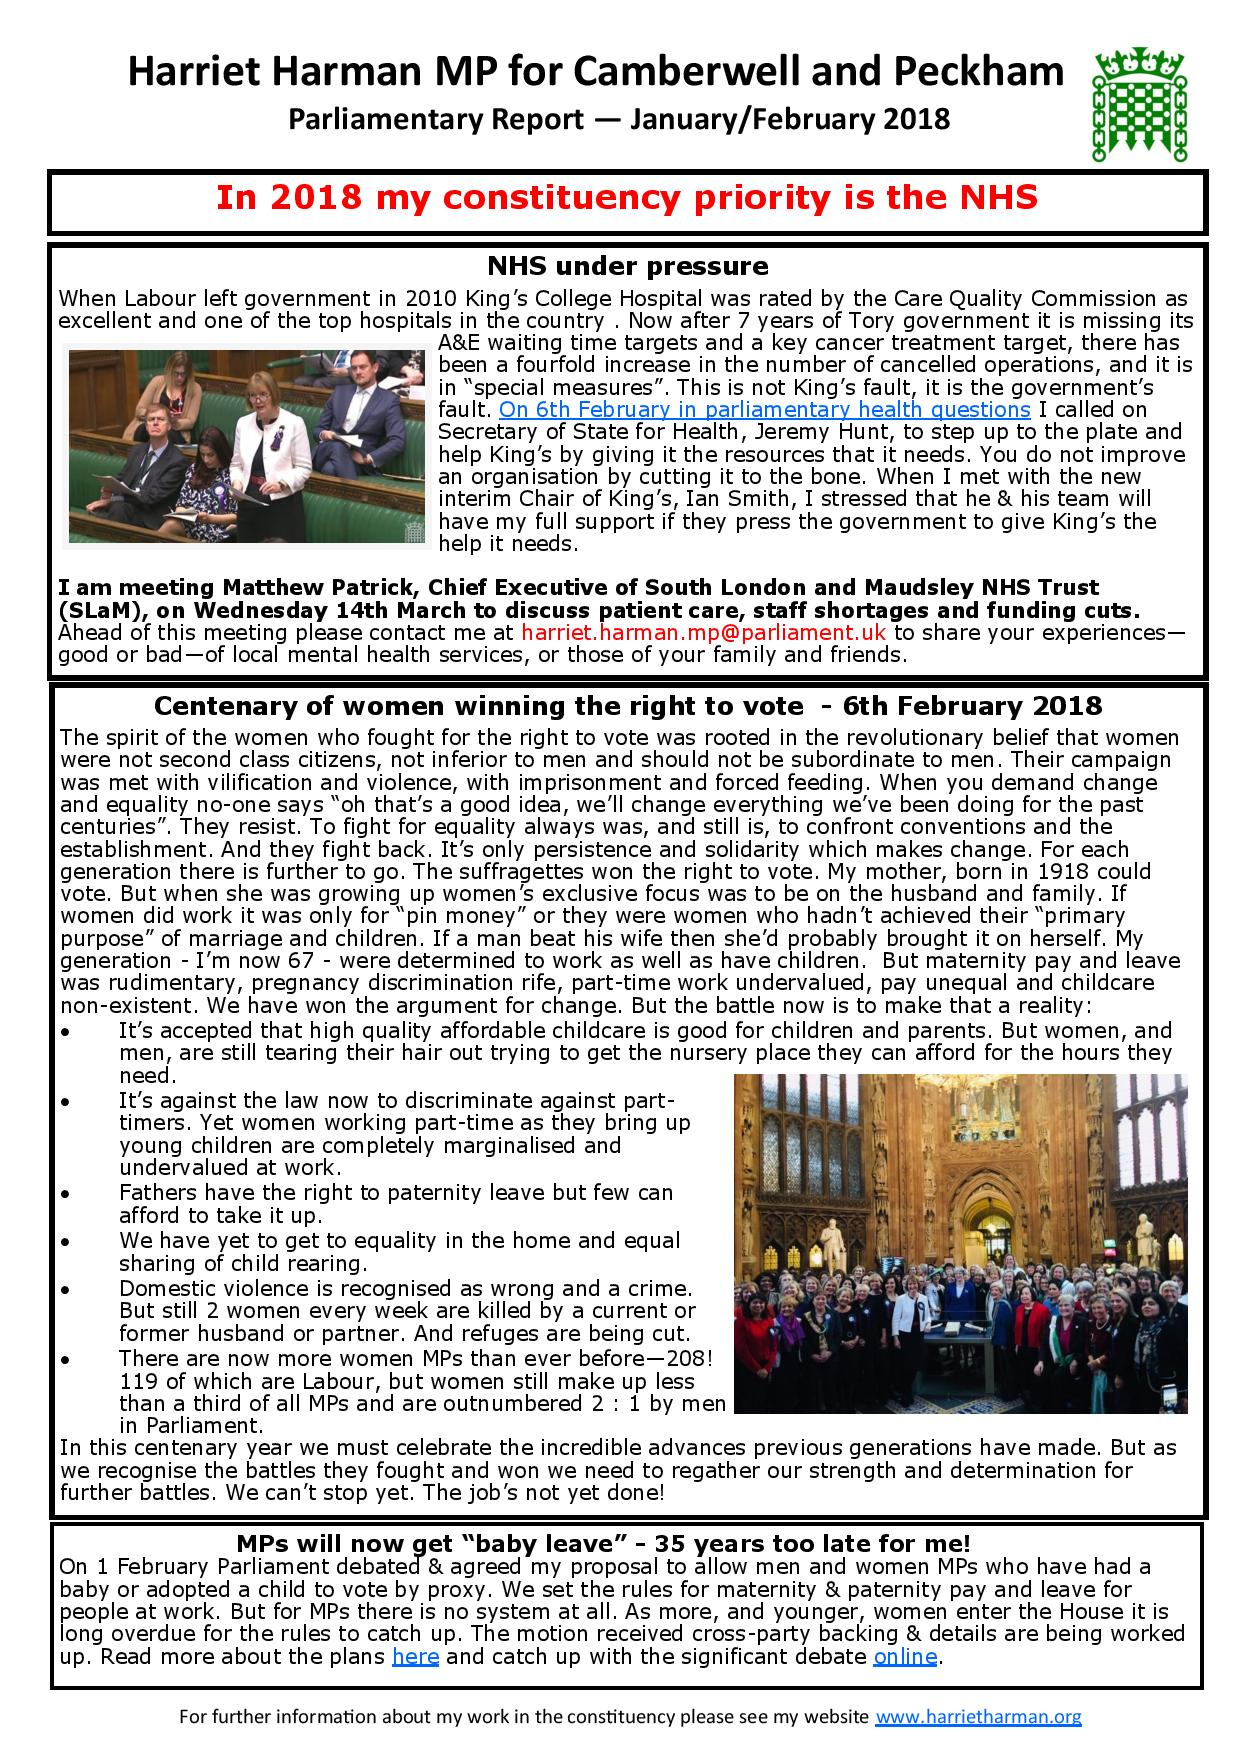 GC_Report_Jan_Feb_18_HH-page-001.jpg